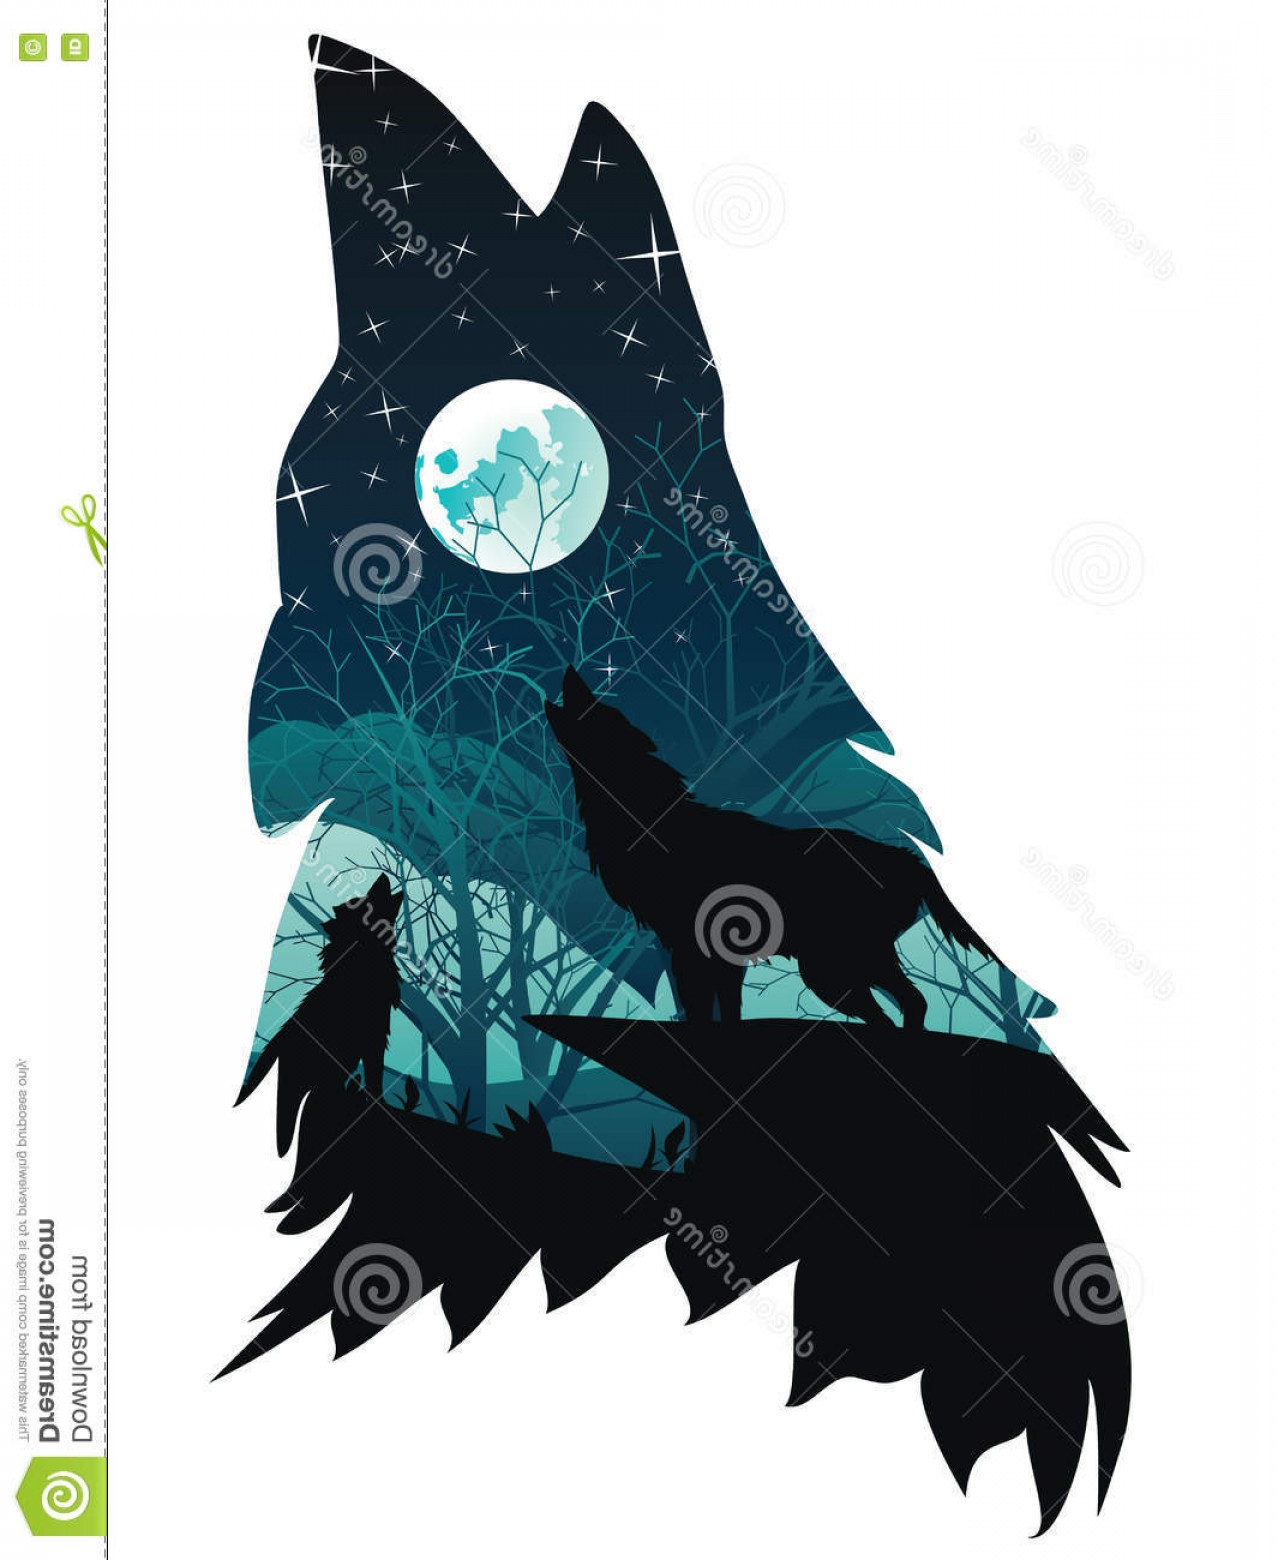 Calm Wolf Vector: Stock Illustration Wolf Howling Forest Silhouette Abstraction Night Image